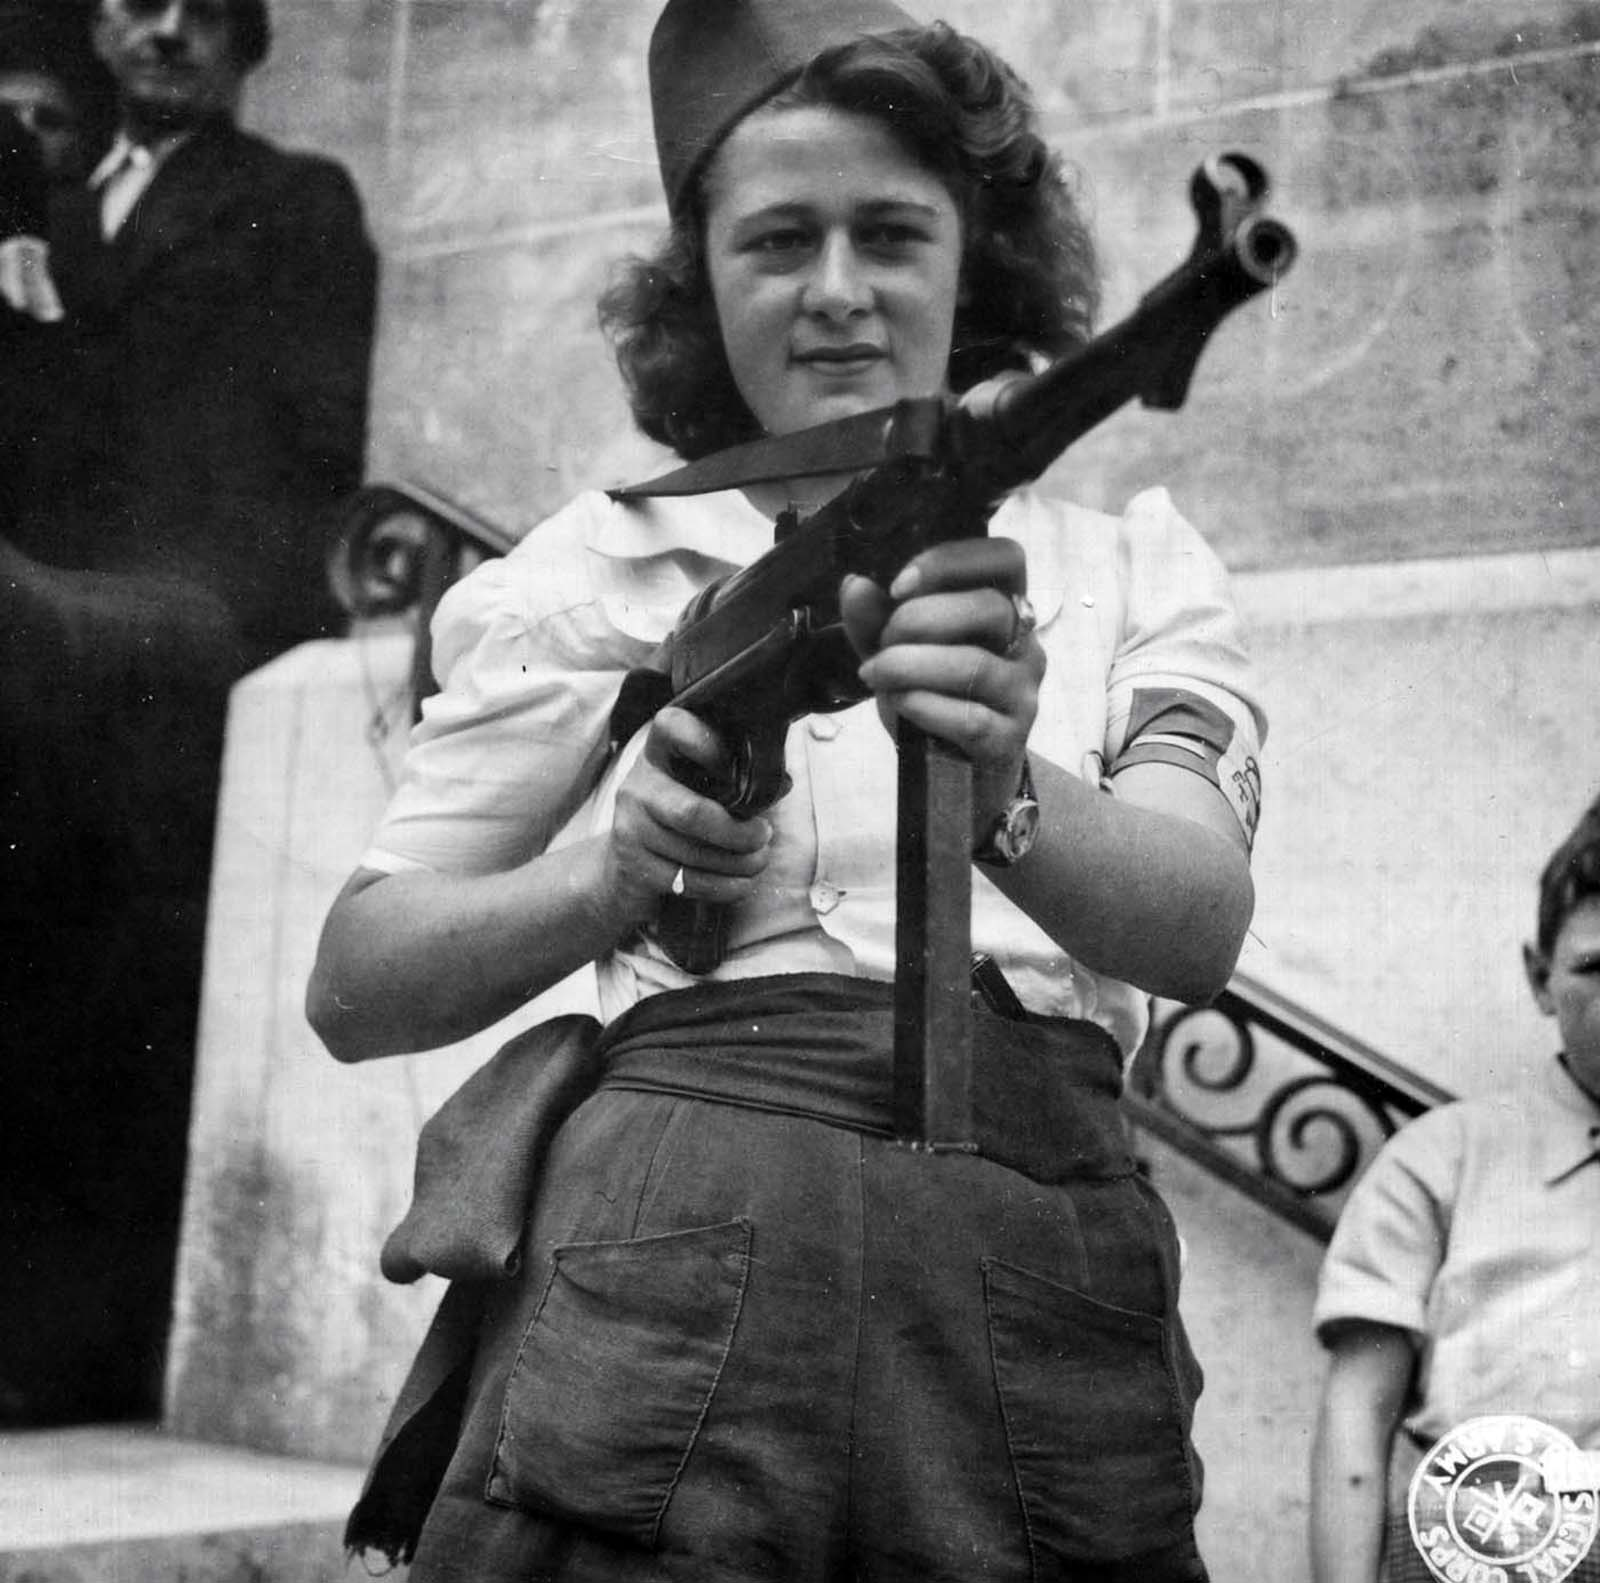 Simone Segouin poses with a German MP 40 with which she is most proficient.